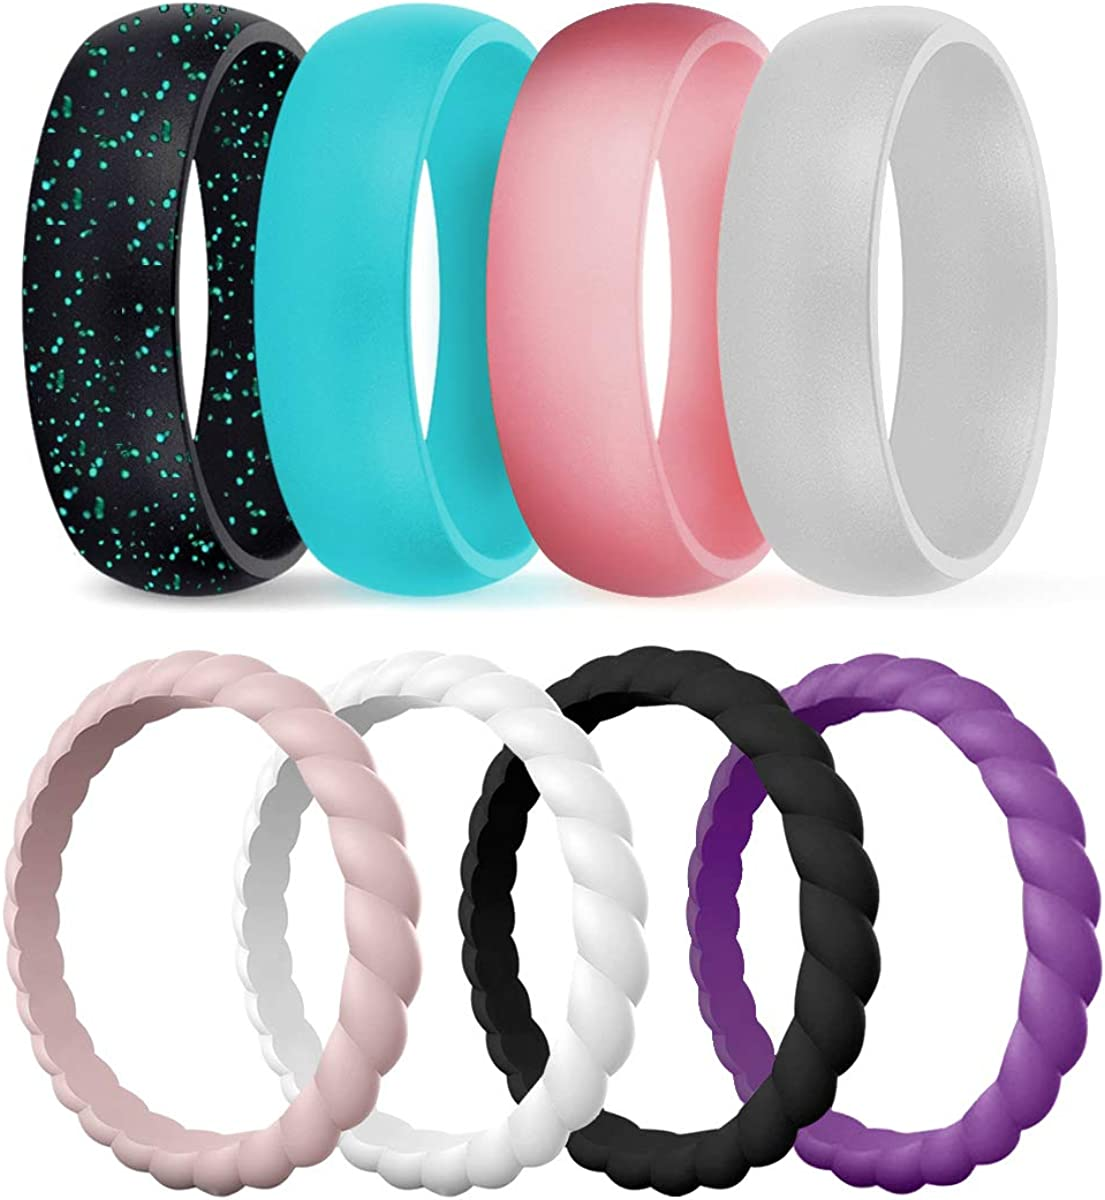 It is a graphic of Silicone Wedding Ring for Women, Durable Rubber Bands for Beach Workout Travel Sports Females- Add These Ring to Your Fashionable Matching Clothes,